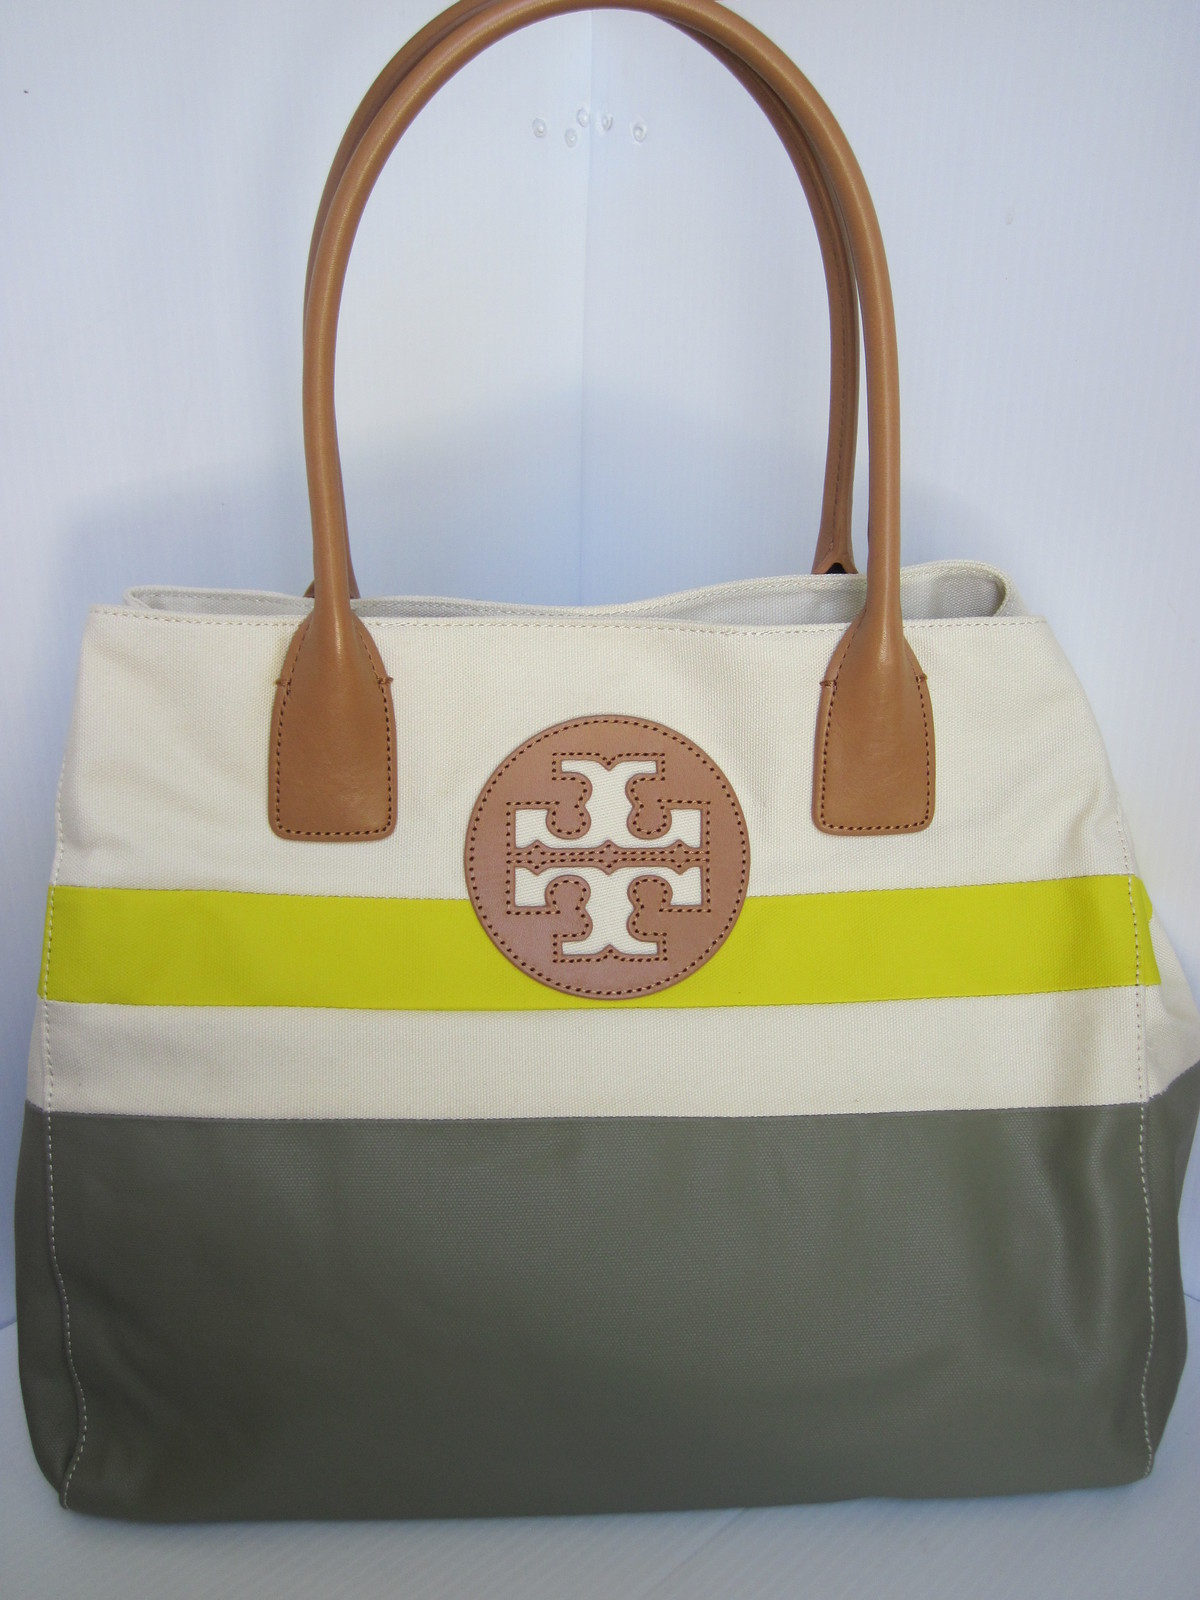 Tory Burch Canvas Dipped Beach Tote Shoppers Green Khaki